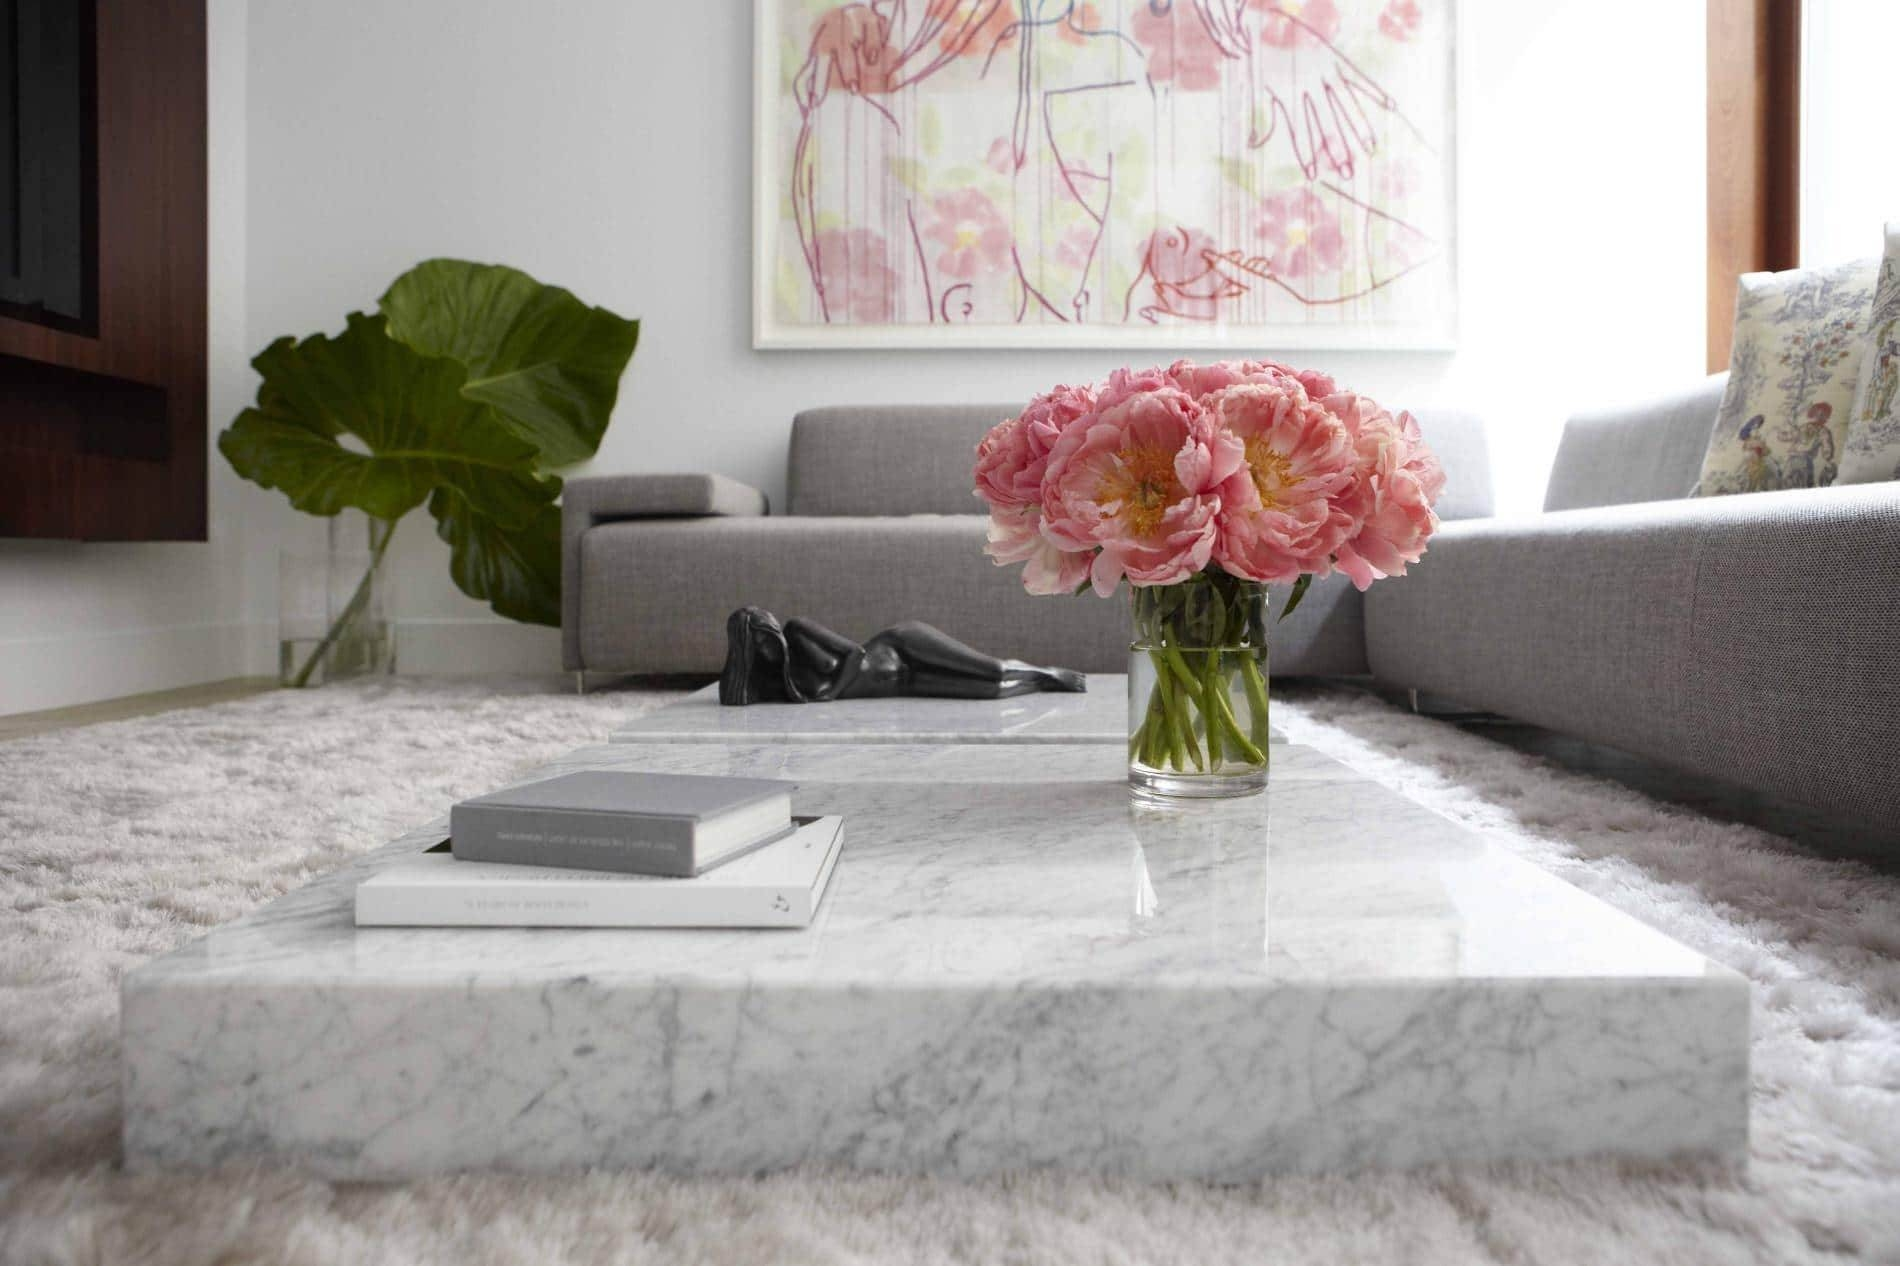 Marble Coffee Table Design, Style Ideas And Tips - Sefa Stone throughout Marble Coffee Tables (Image 22 of 30)